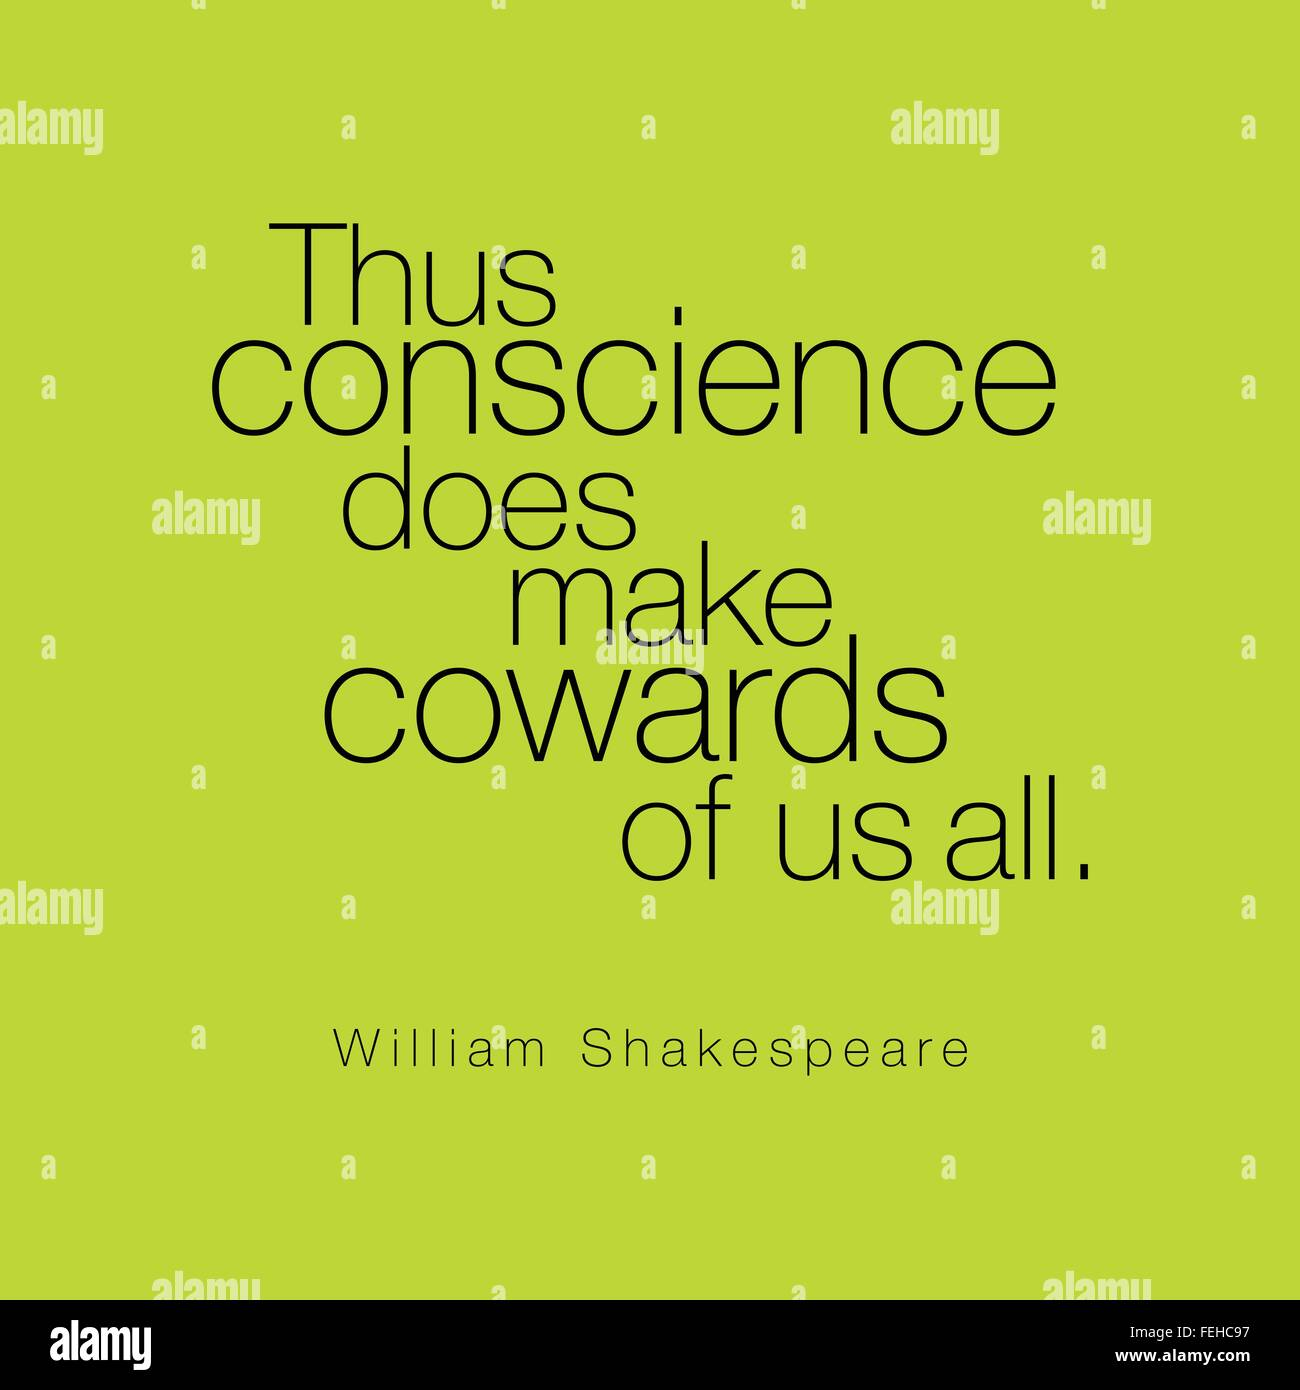 'Thus conscience does make cowards of us all.' William Shakespeare - Stock Vector